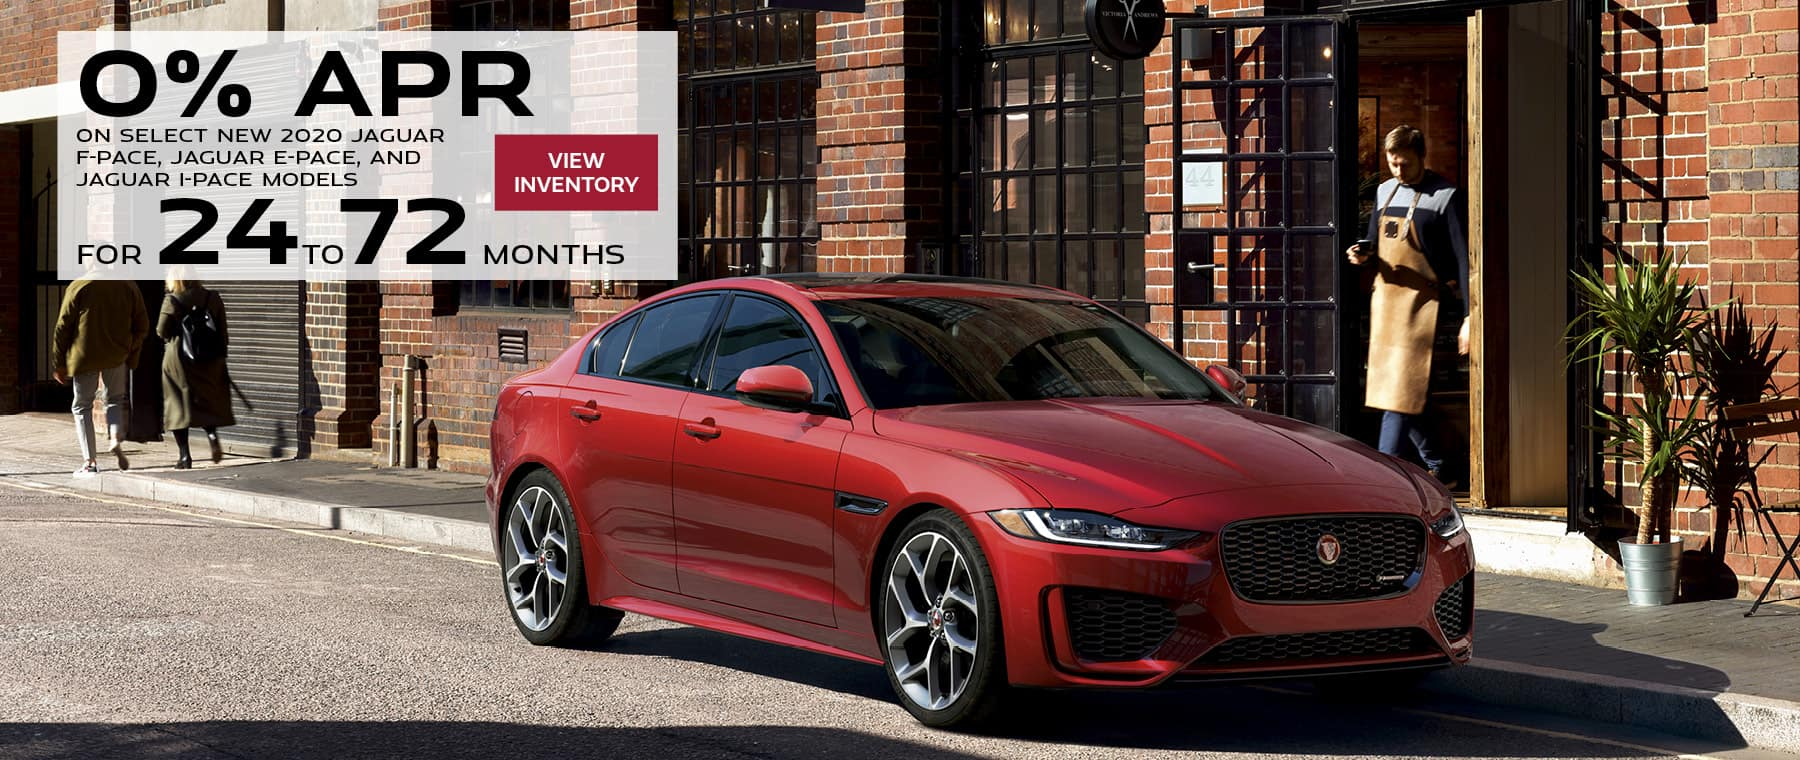 0% on select new Jaguar models